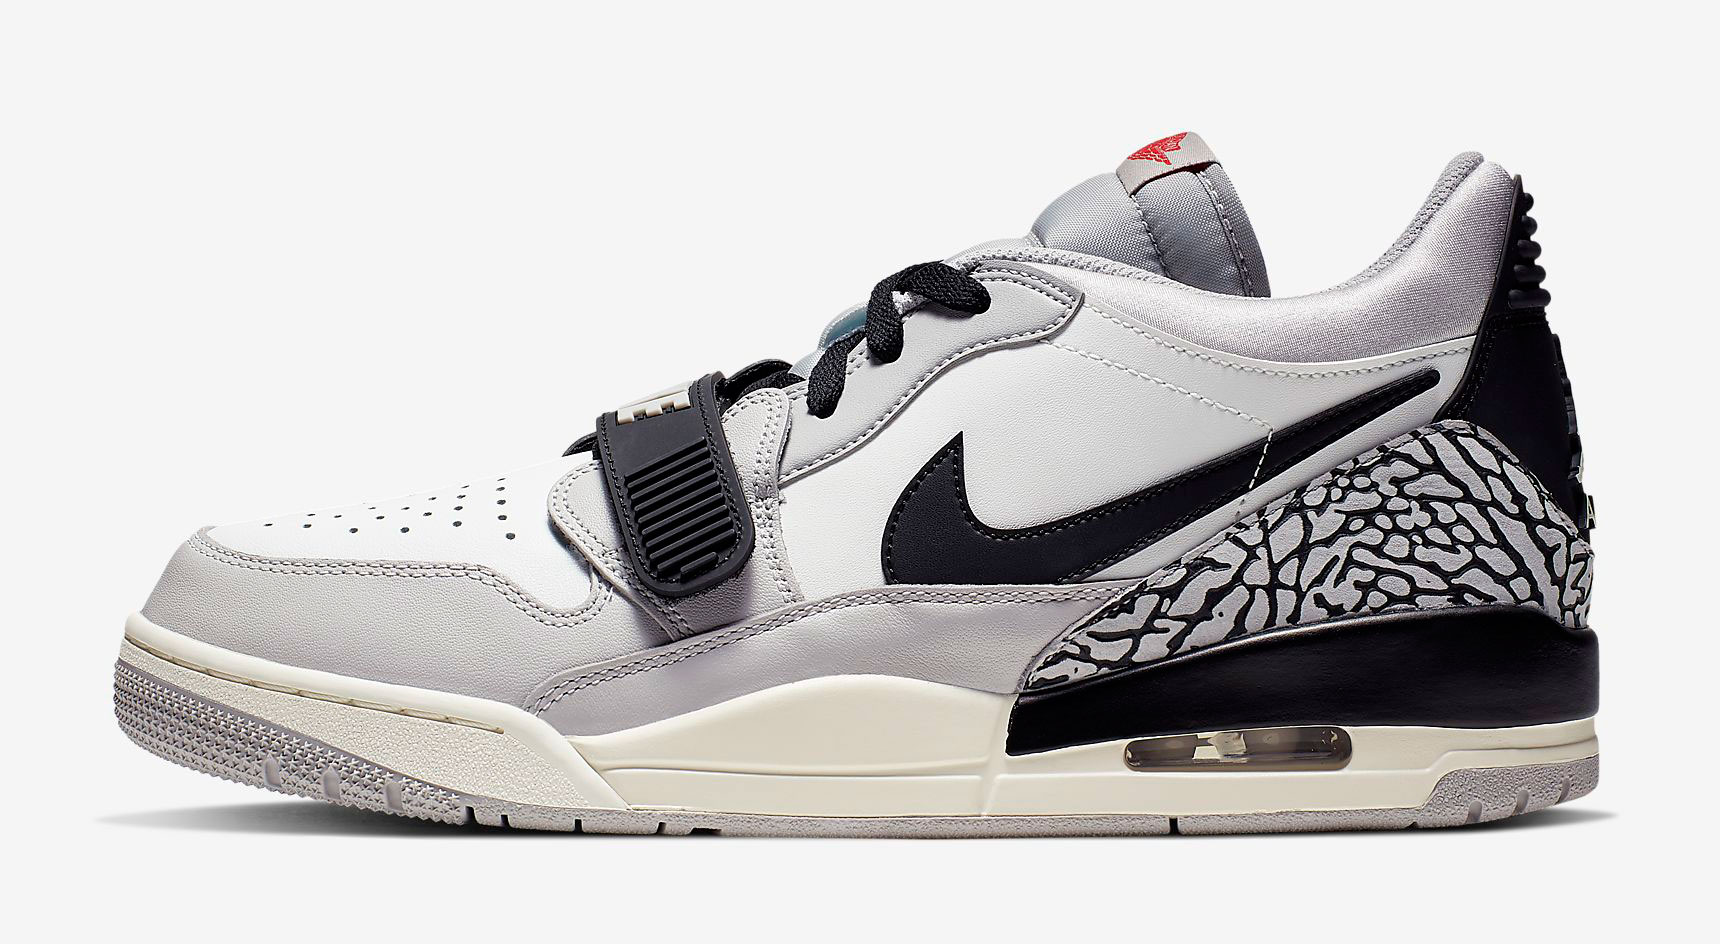 jordan-legacy-312-low-tech-grey-cement-release-date